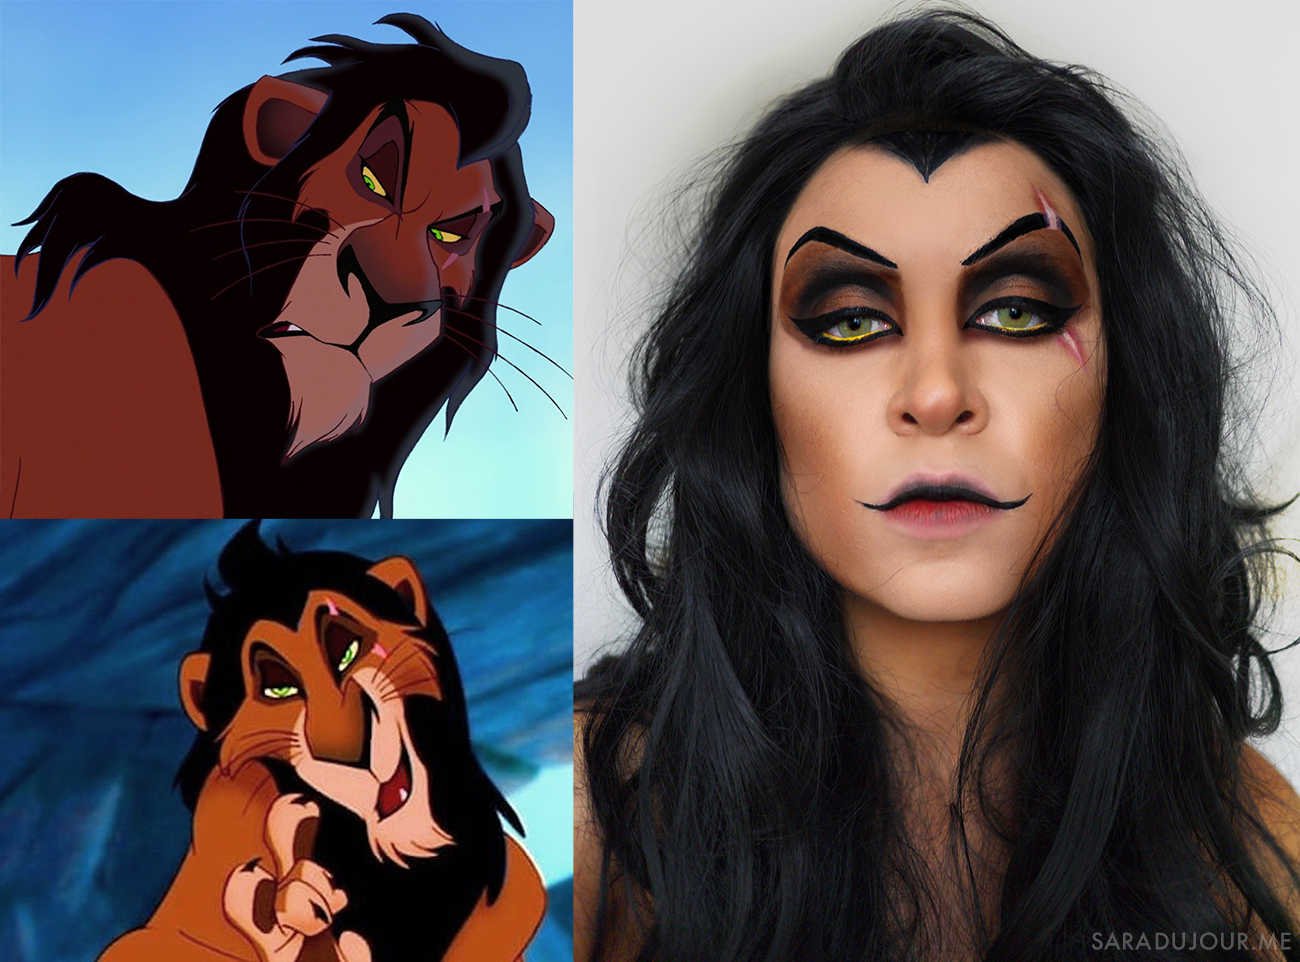 Scar Lion King Drag Makeup | Sara du Jour